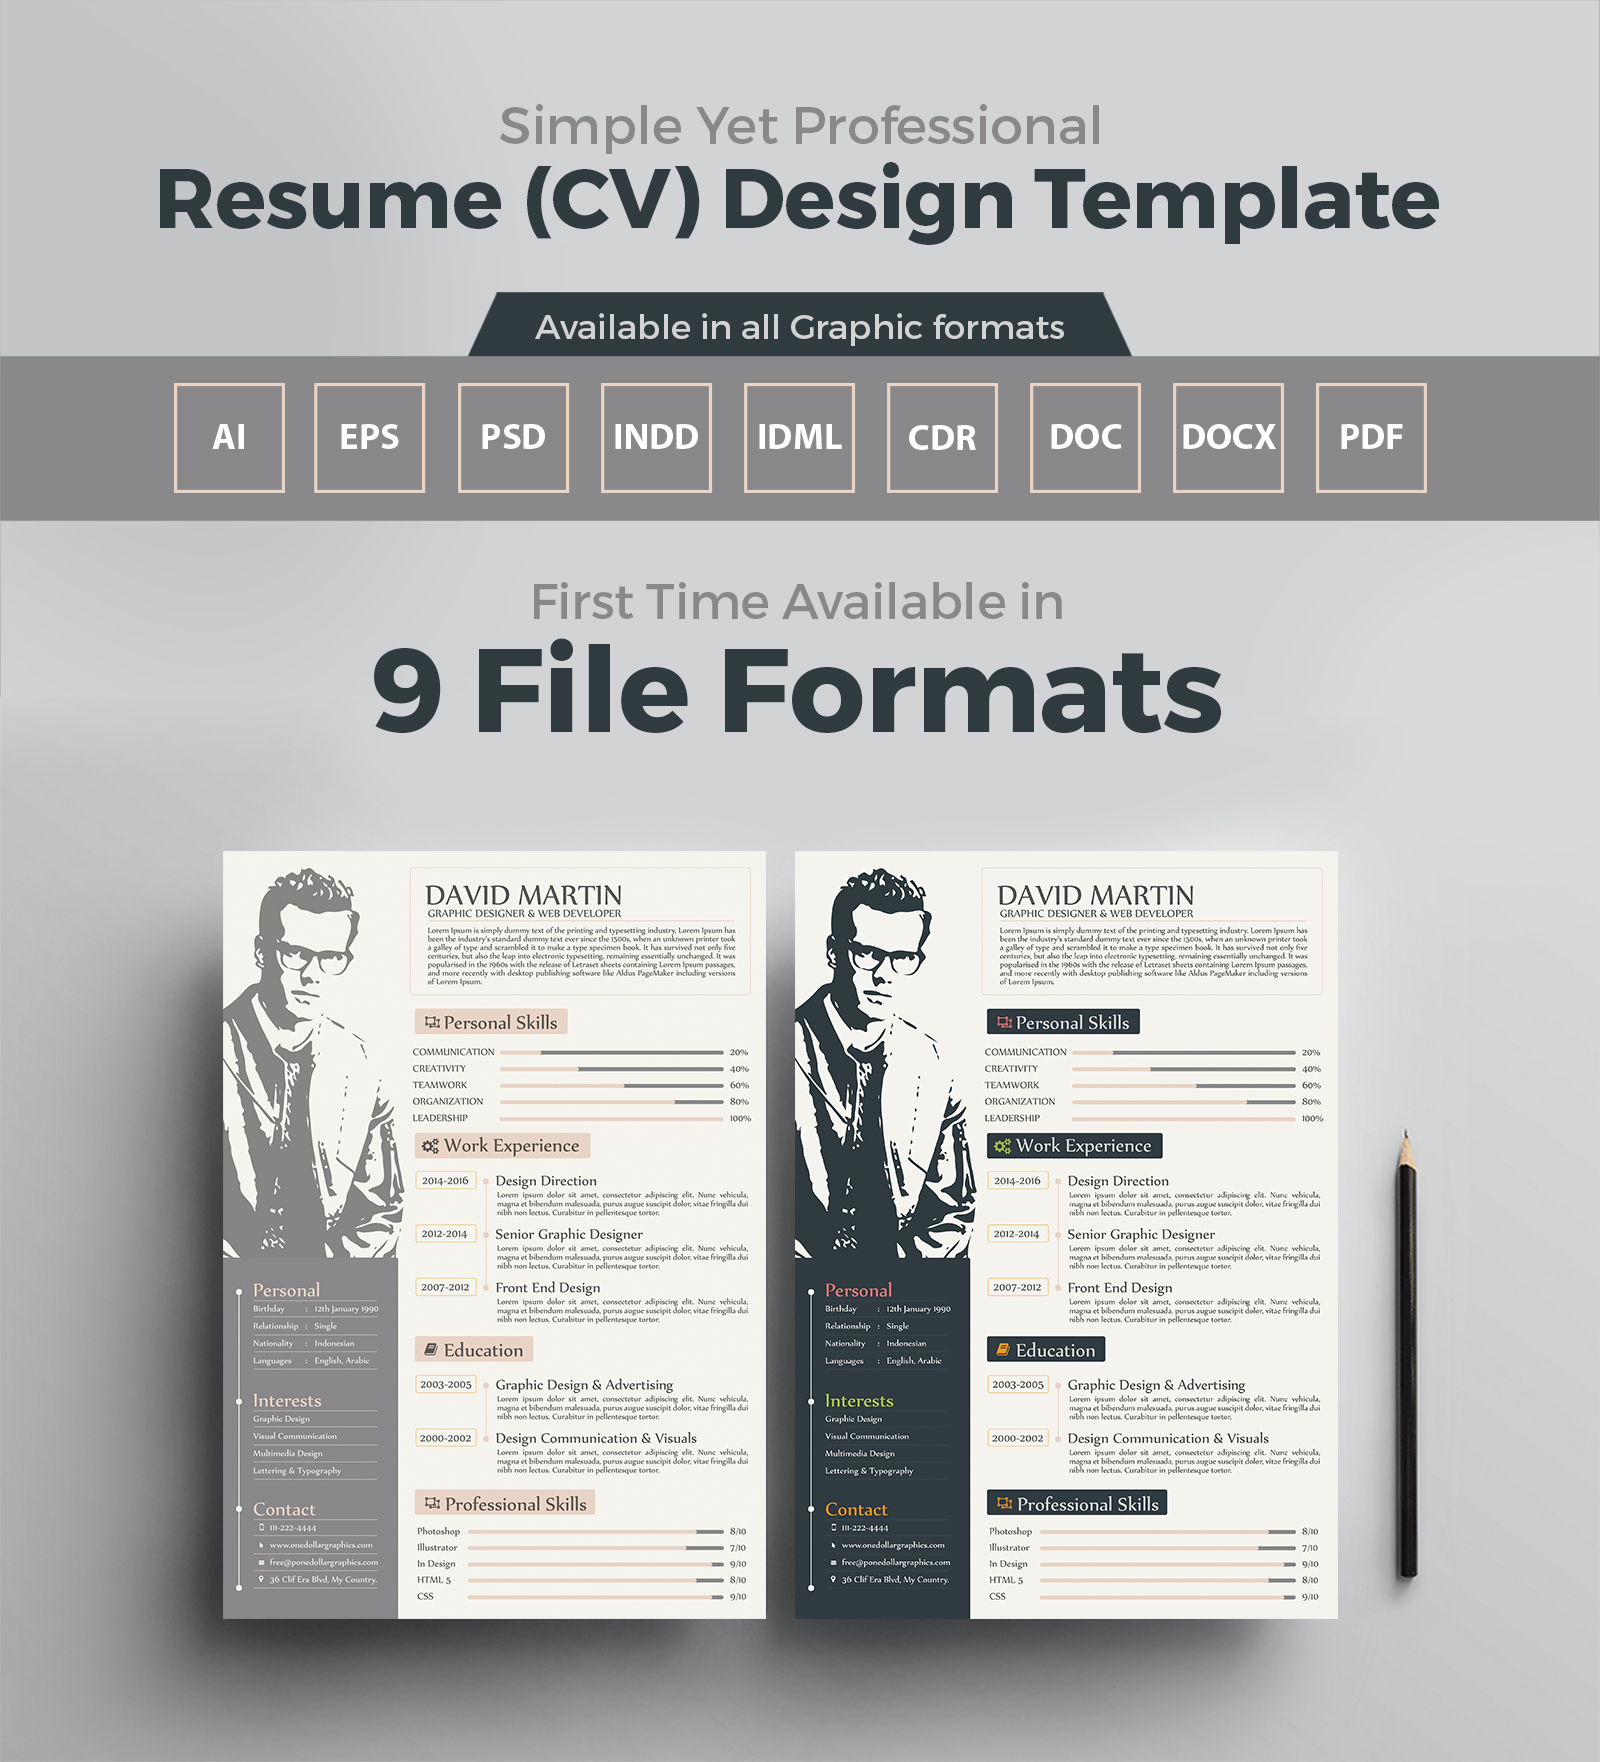 simple-yet-professional-resume-cv-design-template-3